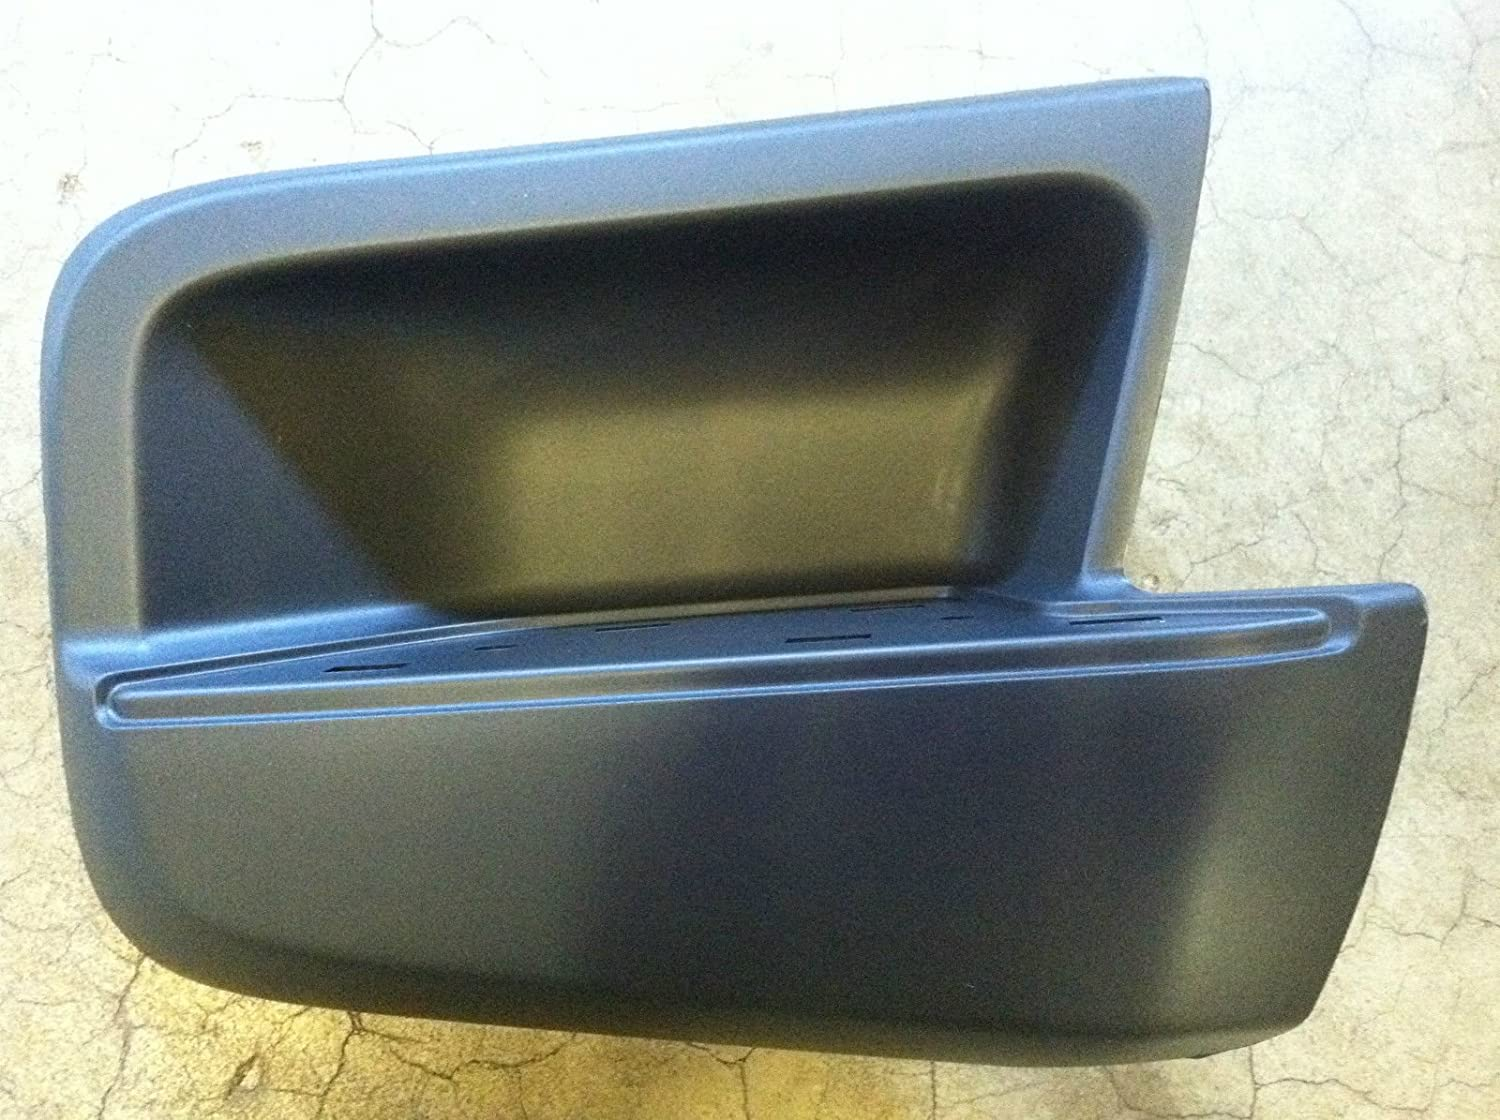 NEW OEM 2005-2015 NISSAN XTERRA RIGHT BUMPER STEP WITH PAD PASSENGER SIDE